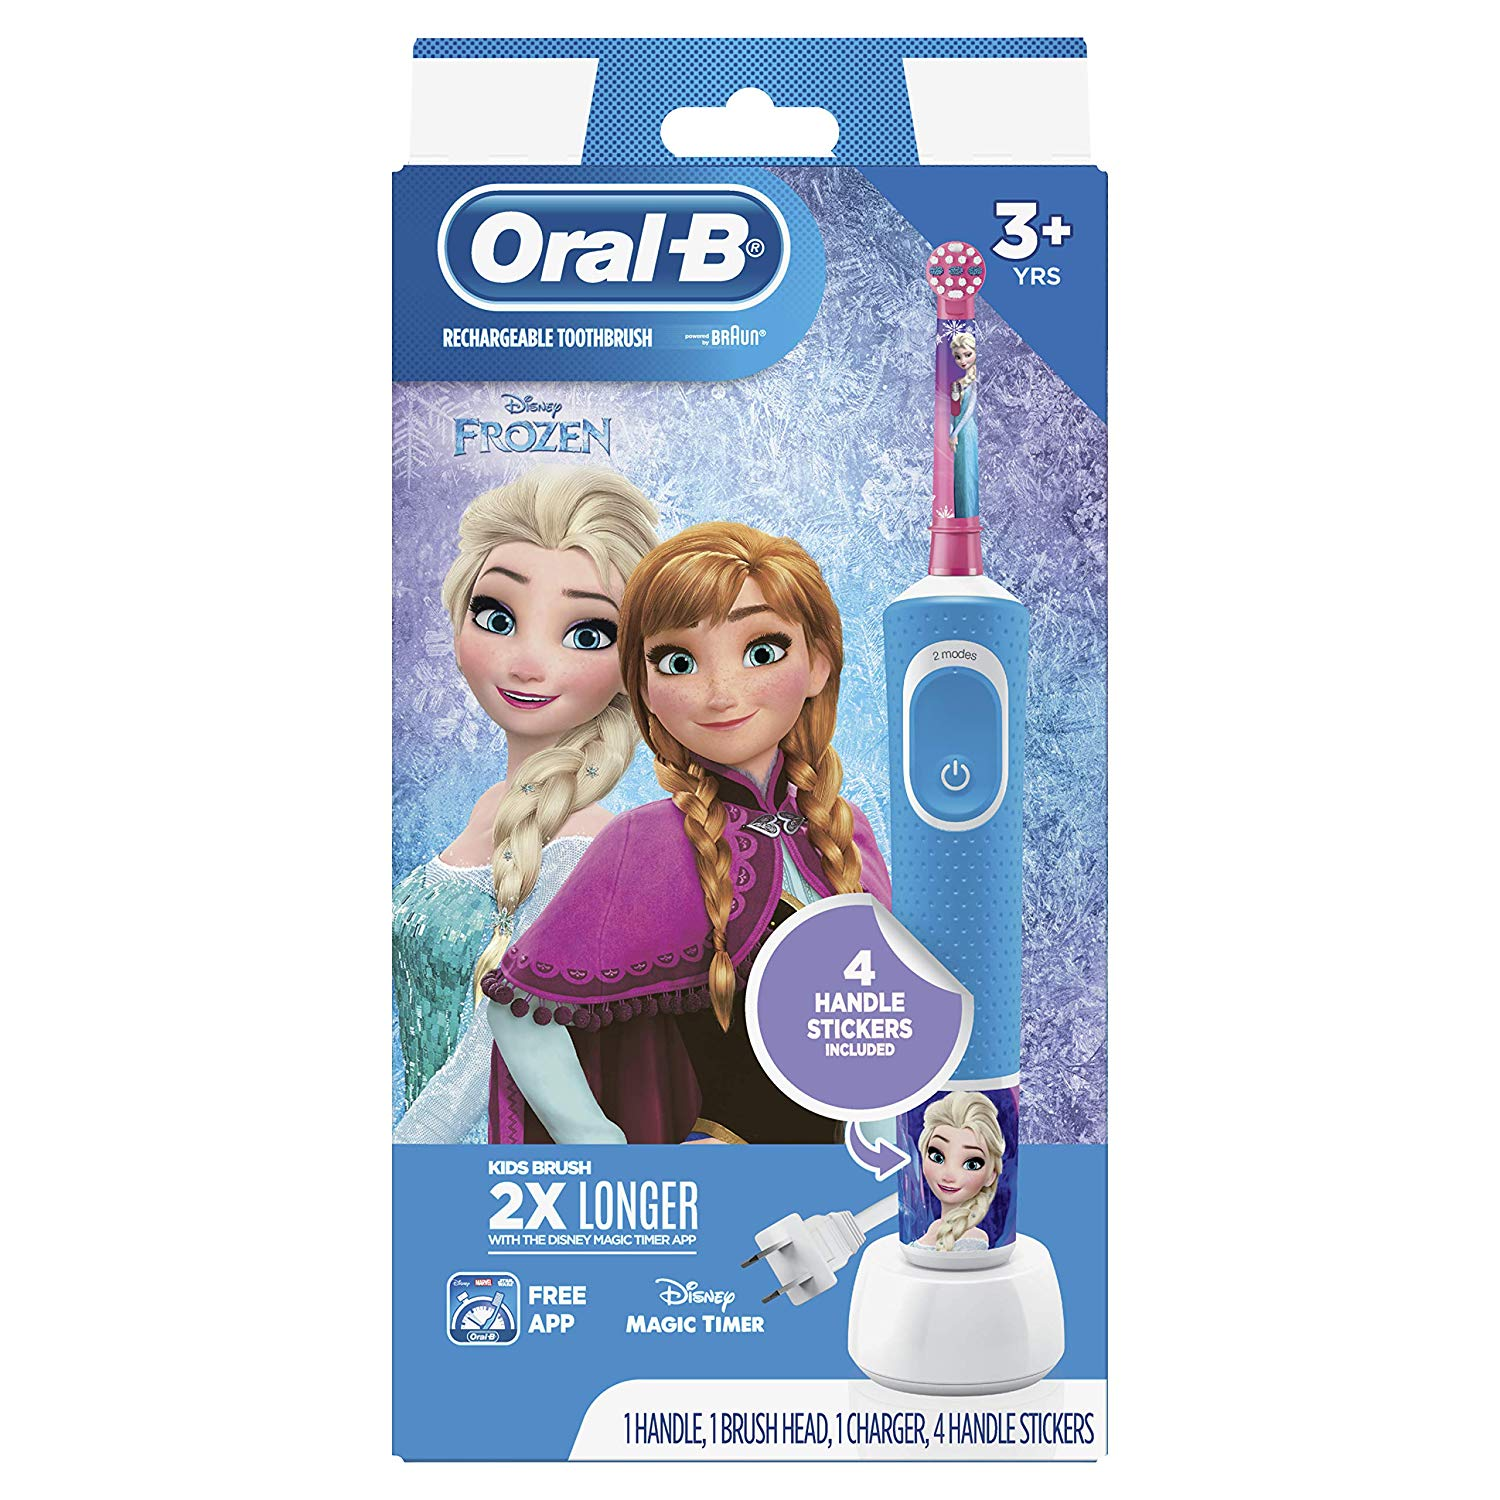 Oral-B Kids Electric Toothbrush Featuring Disney's Frozen, for Kids 3+ by Oral-B